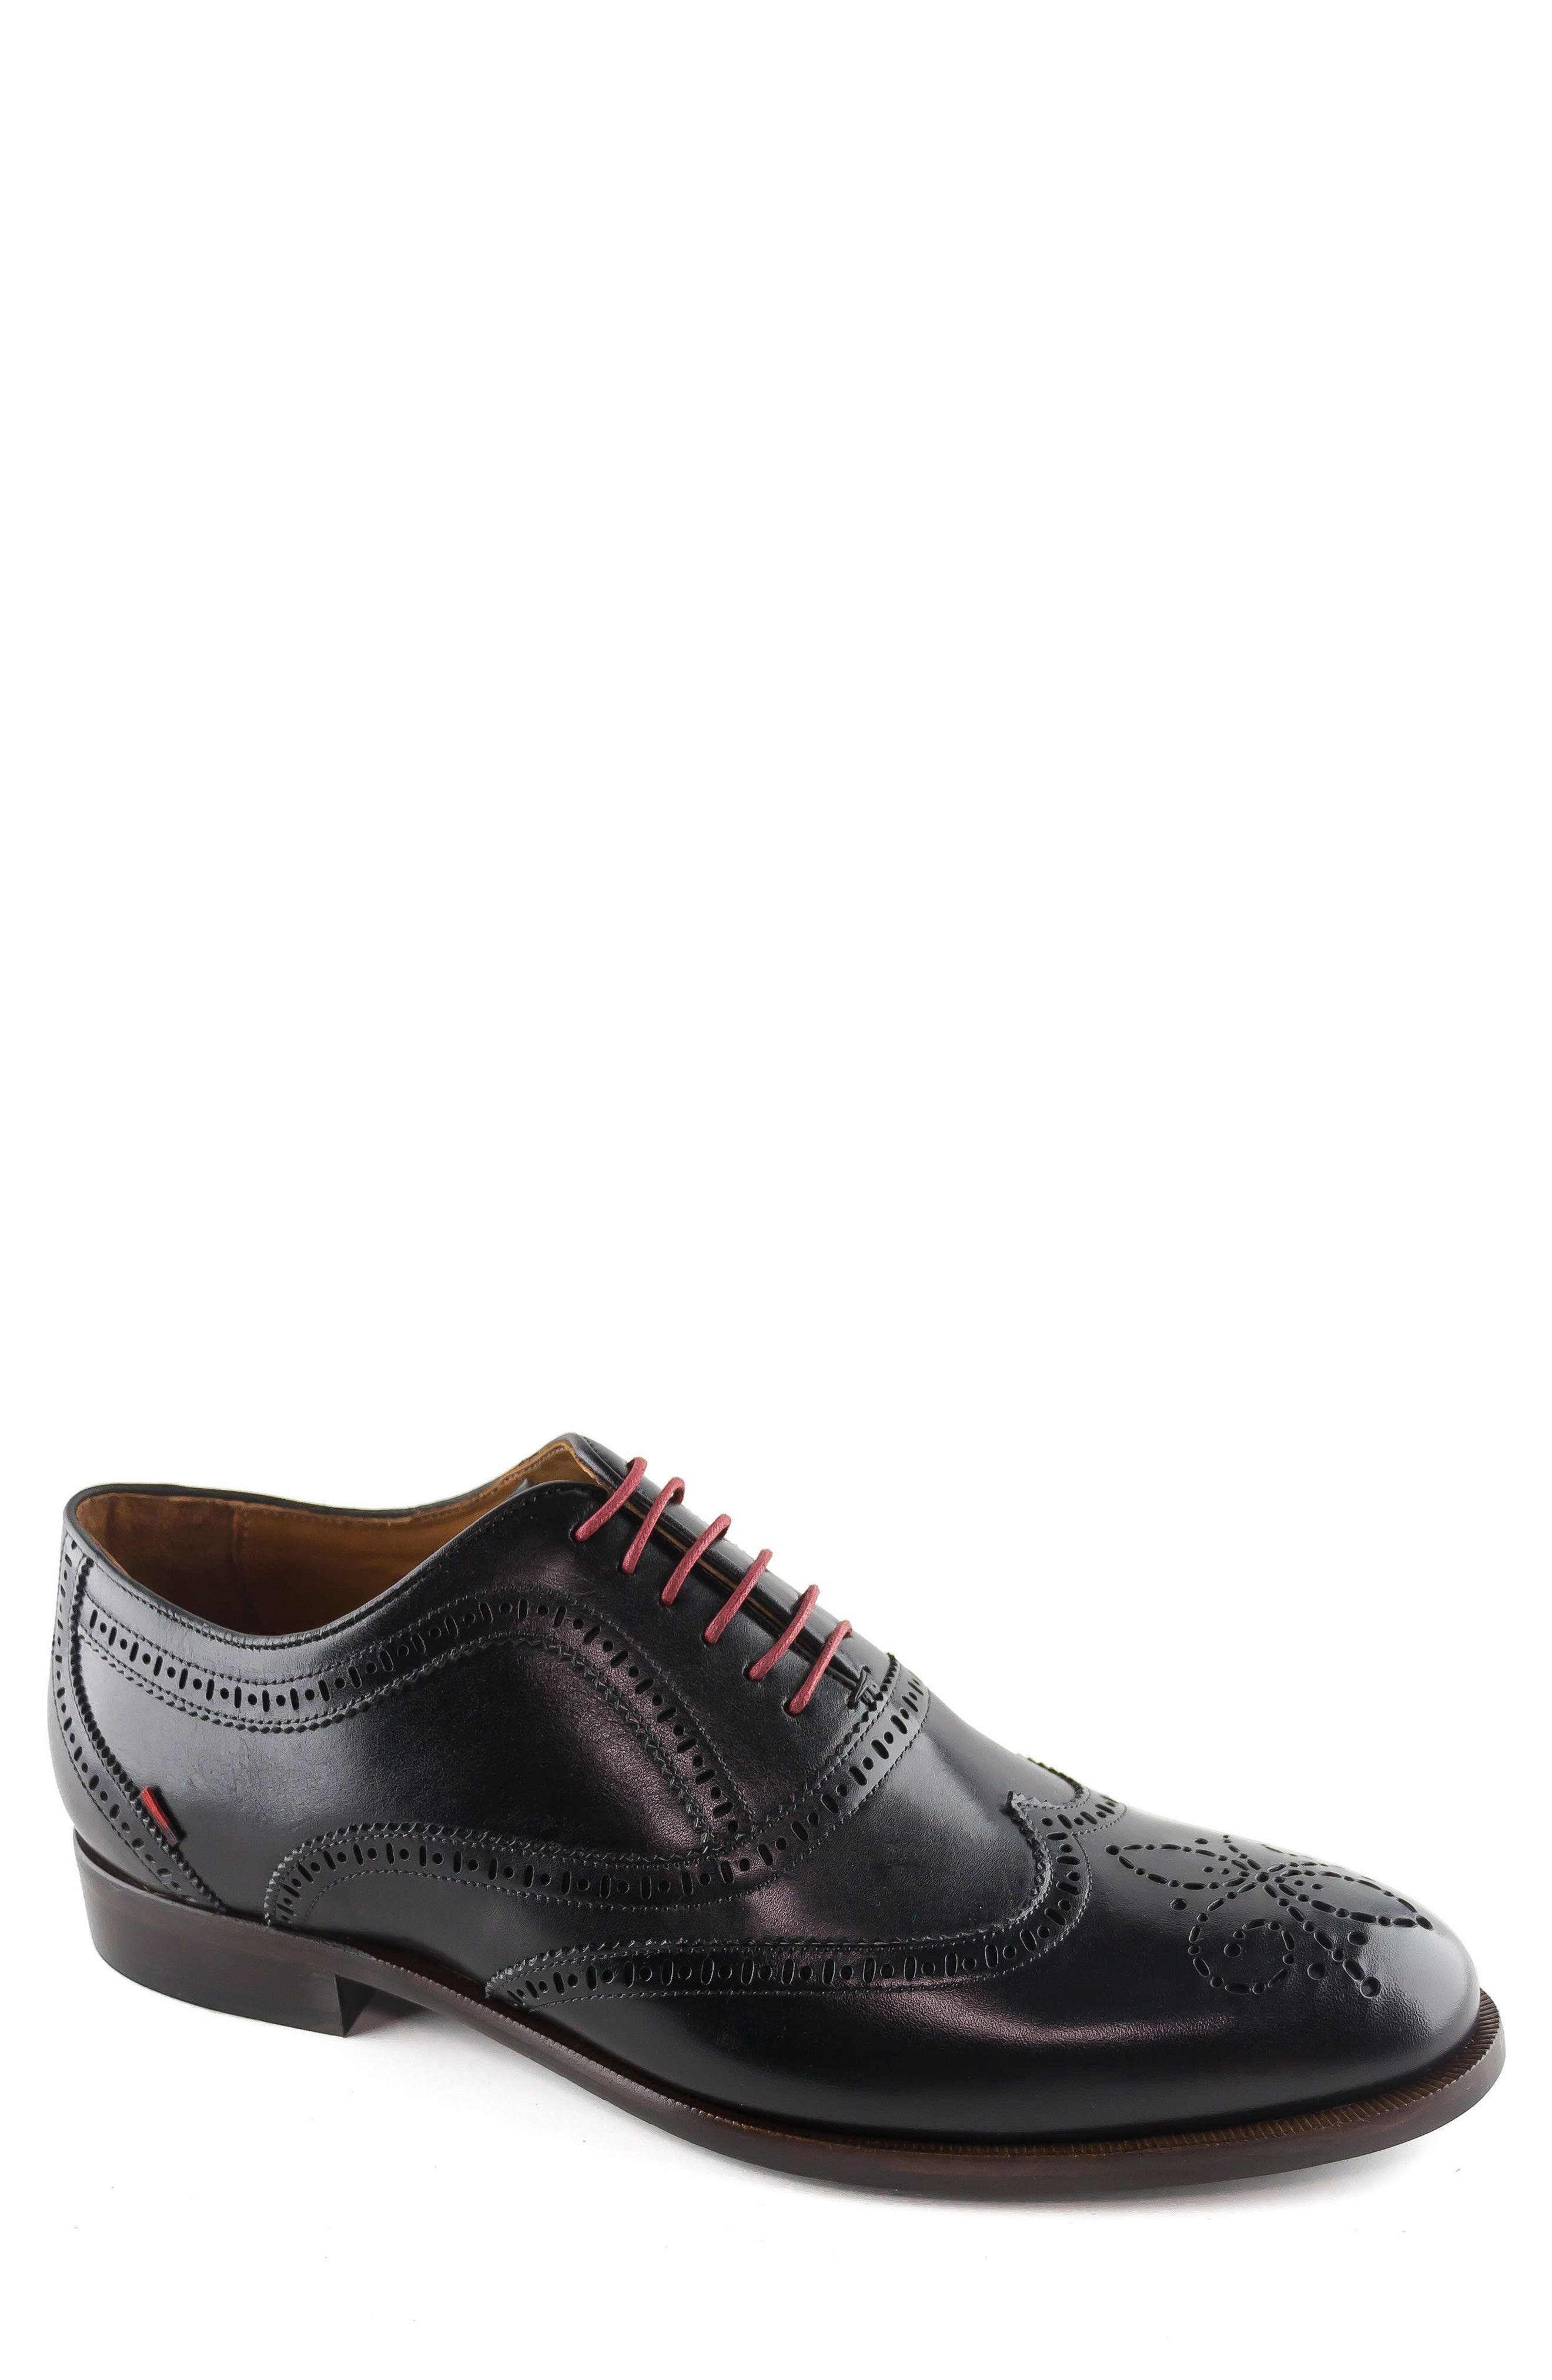 Madison Wingtip Oxford,                         Main,                         color, BLACK